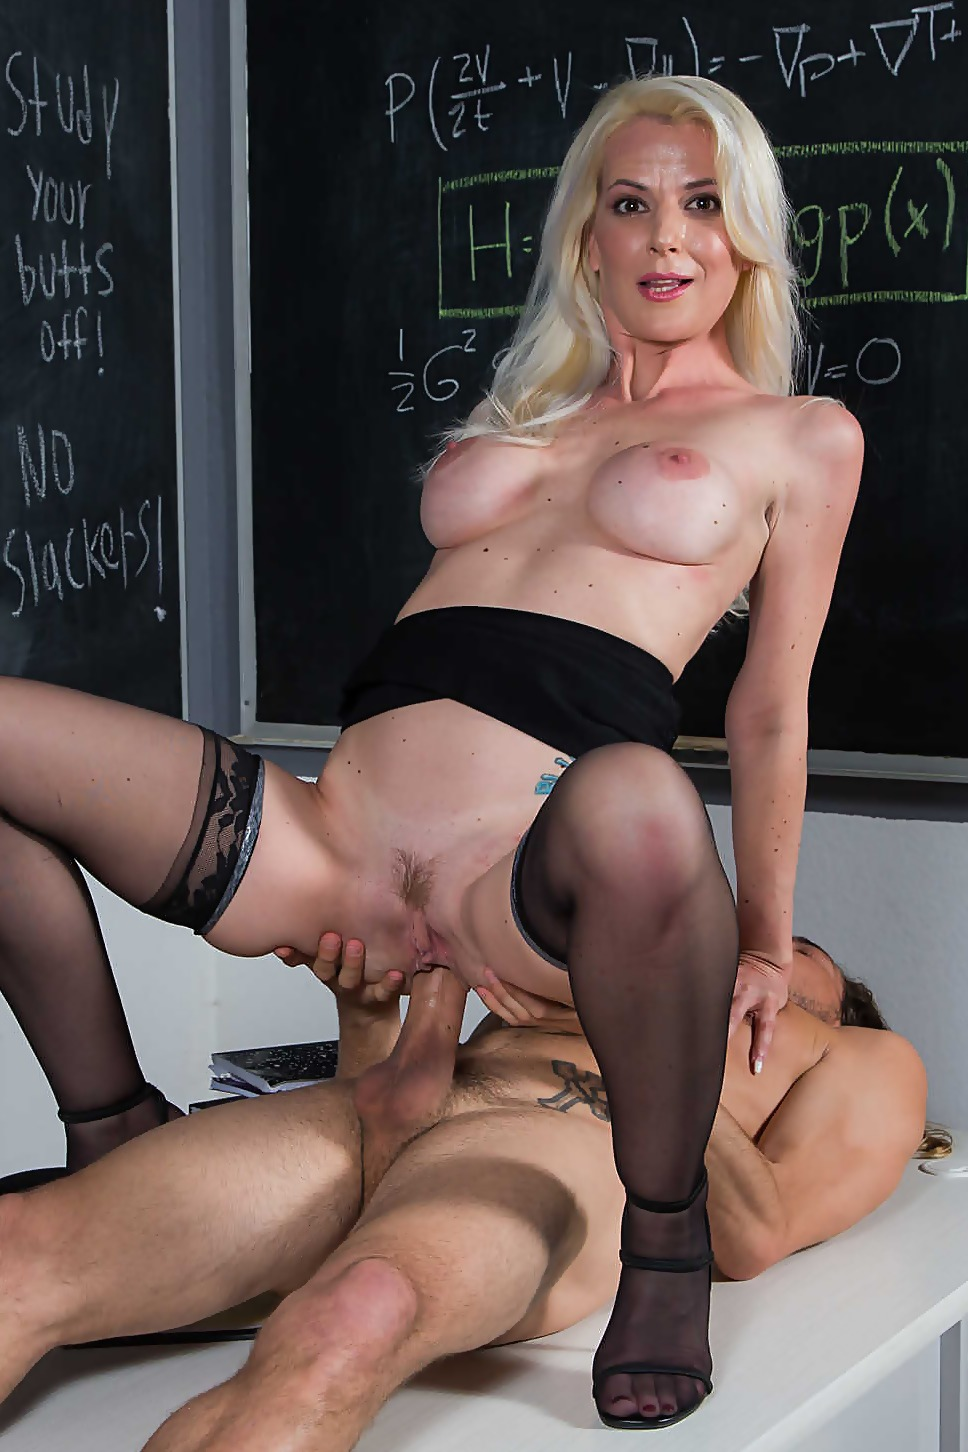 Professor Anita Blue LOVES to ride young college cock in her classroom